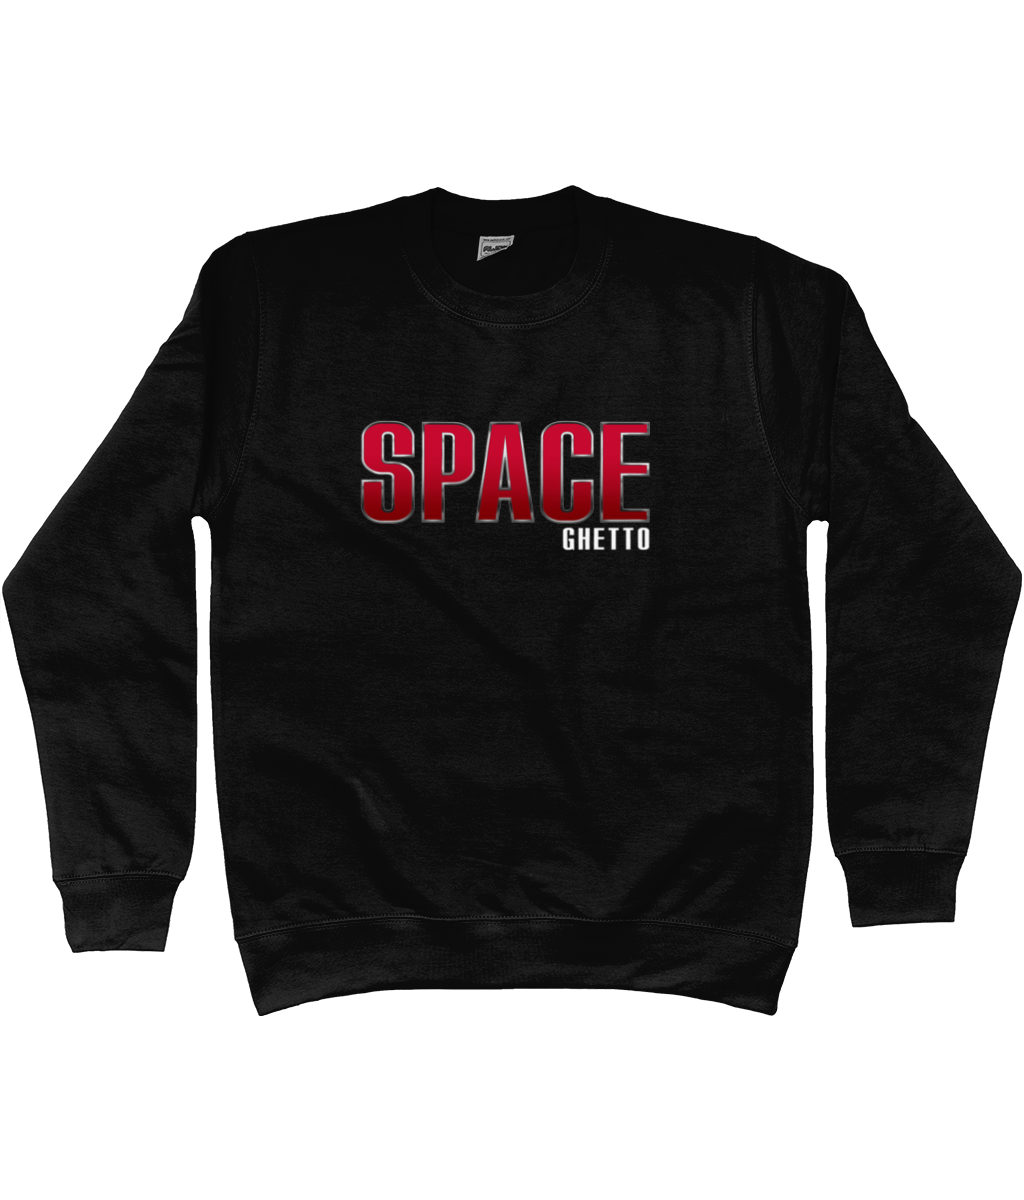 Space Ghetto Sweatshirt